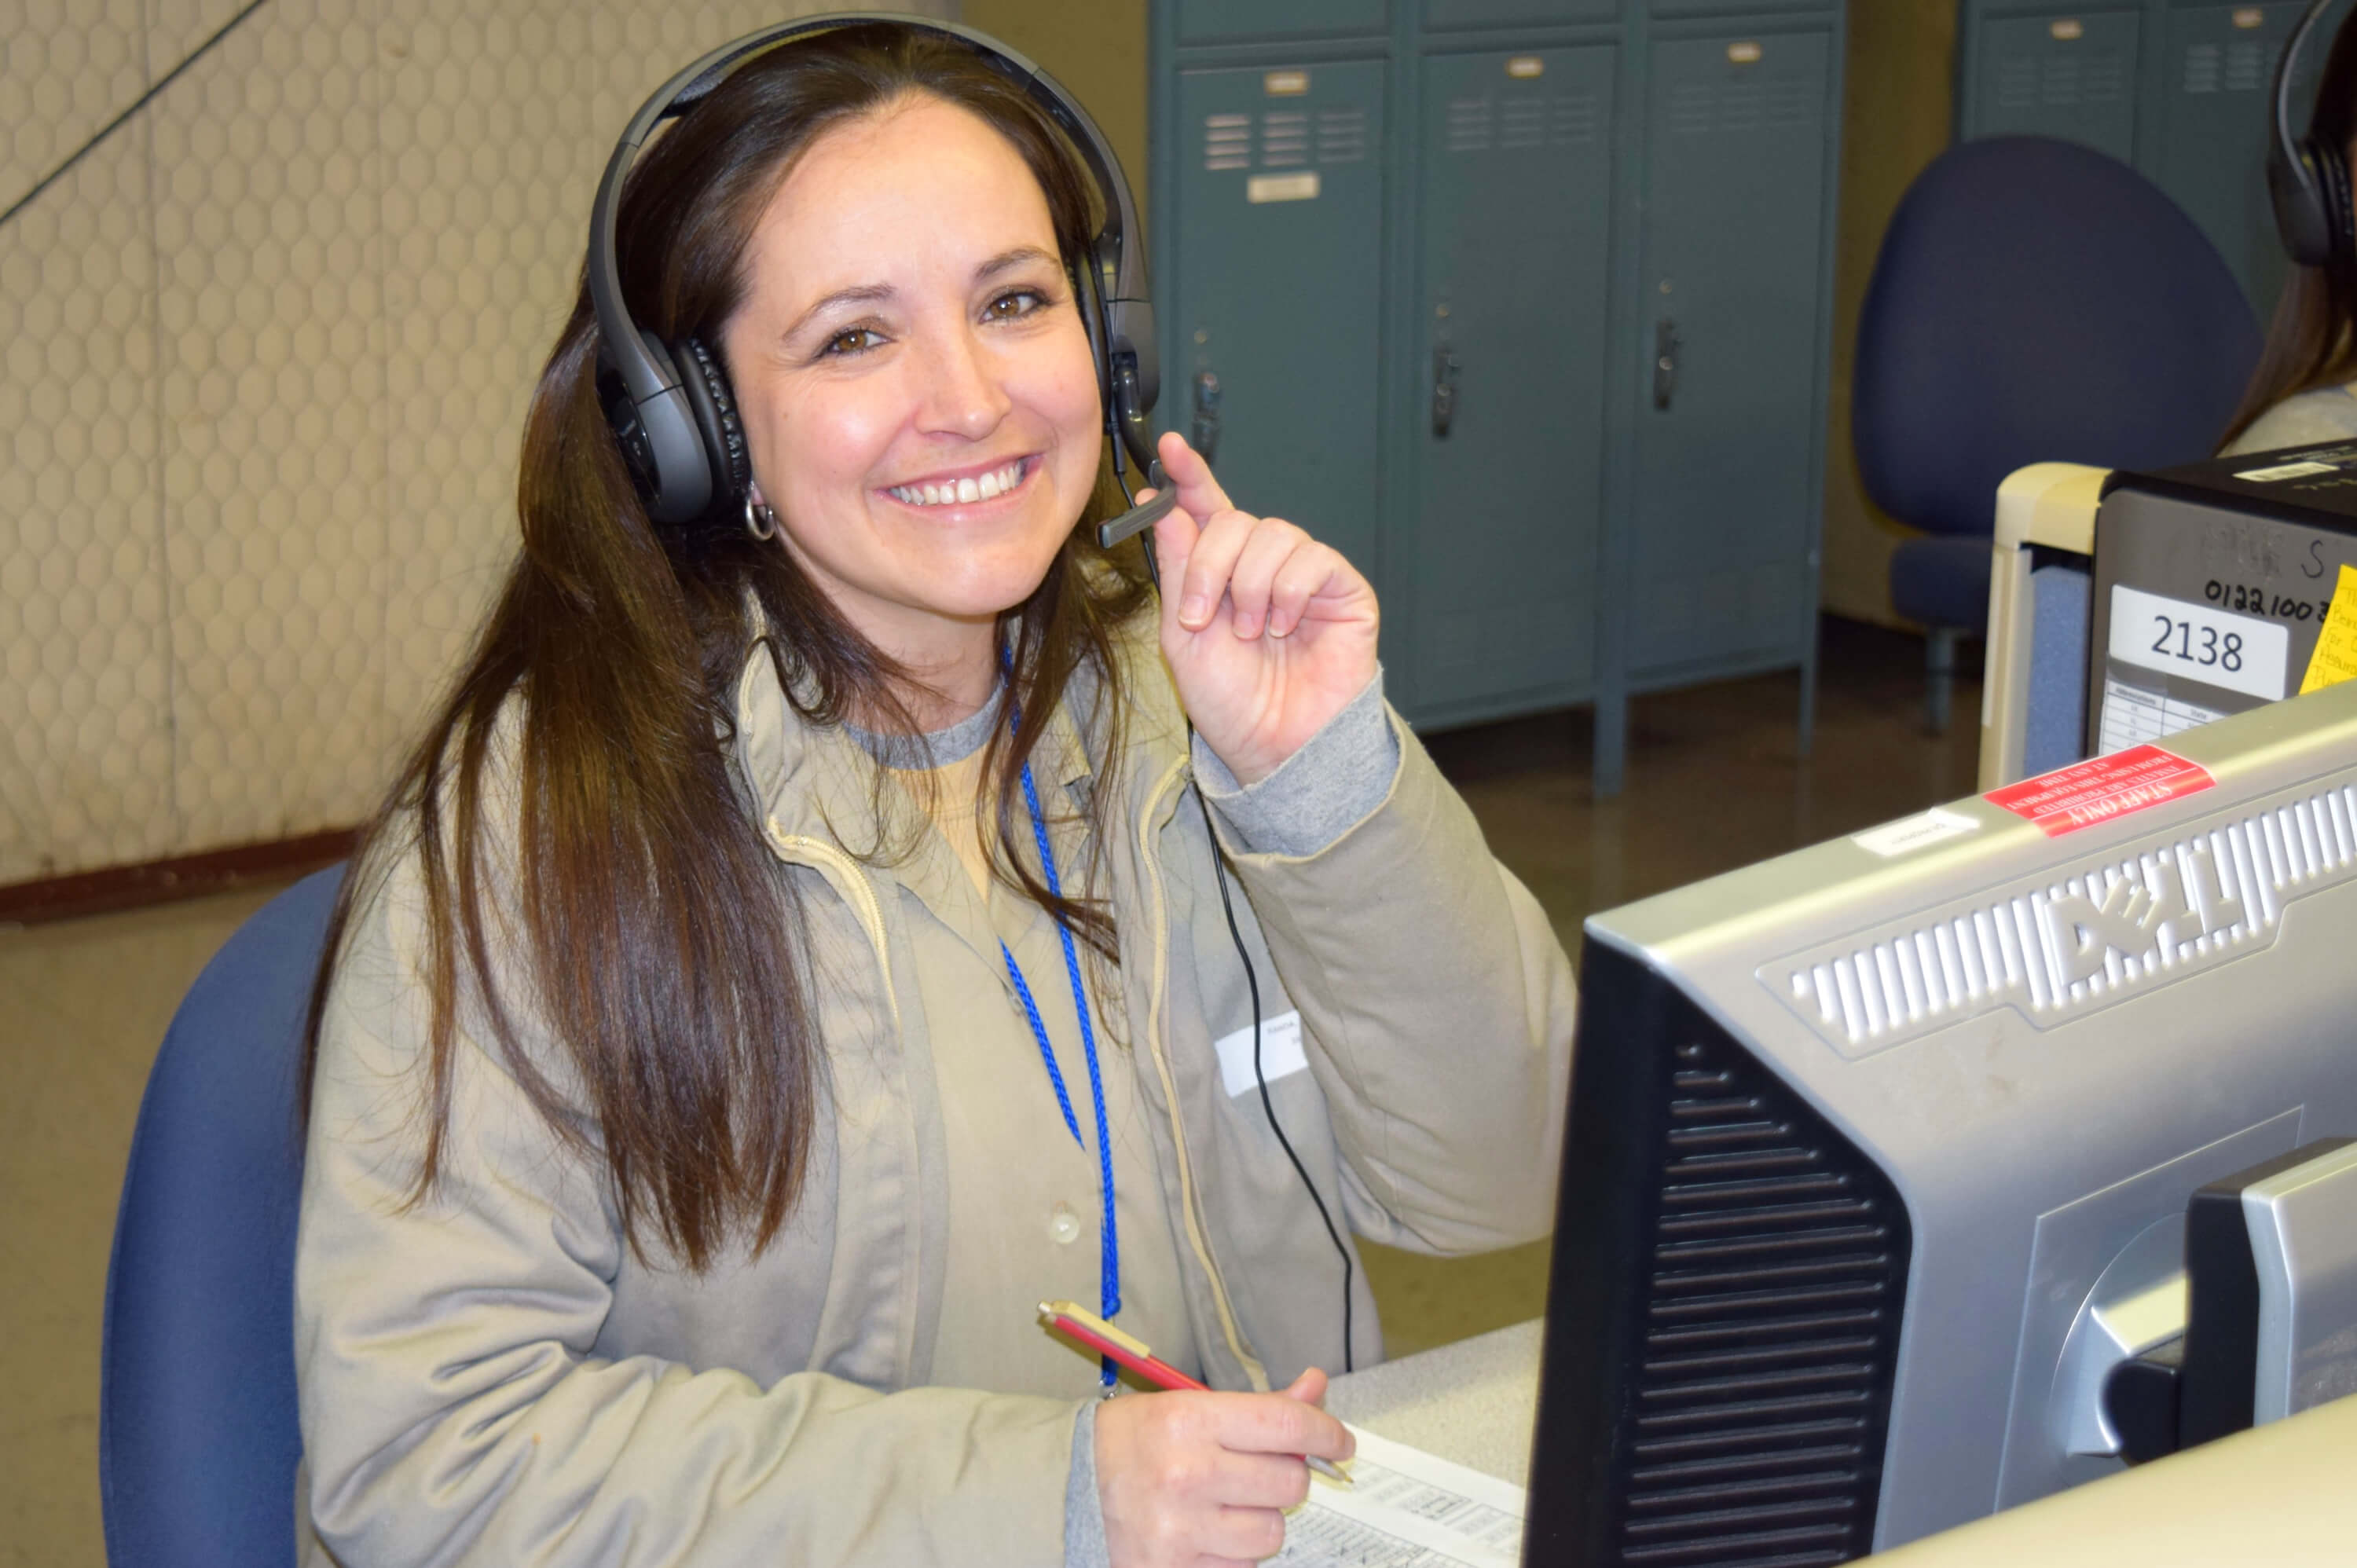 A UNICOR worker smiles at the camera as she works at a contact center terminal